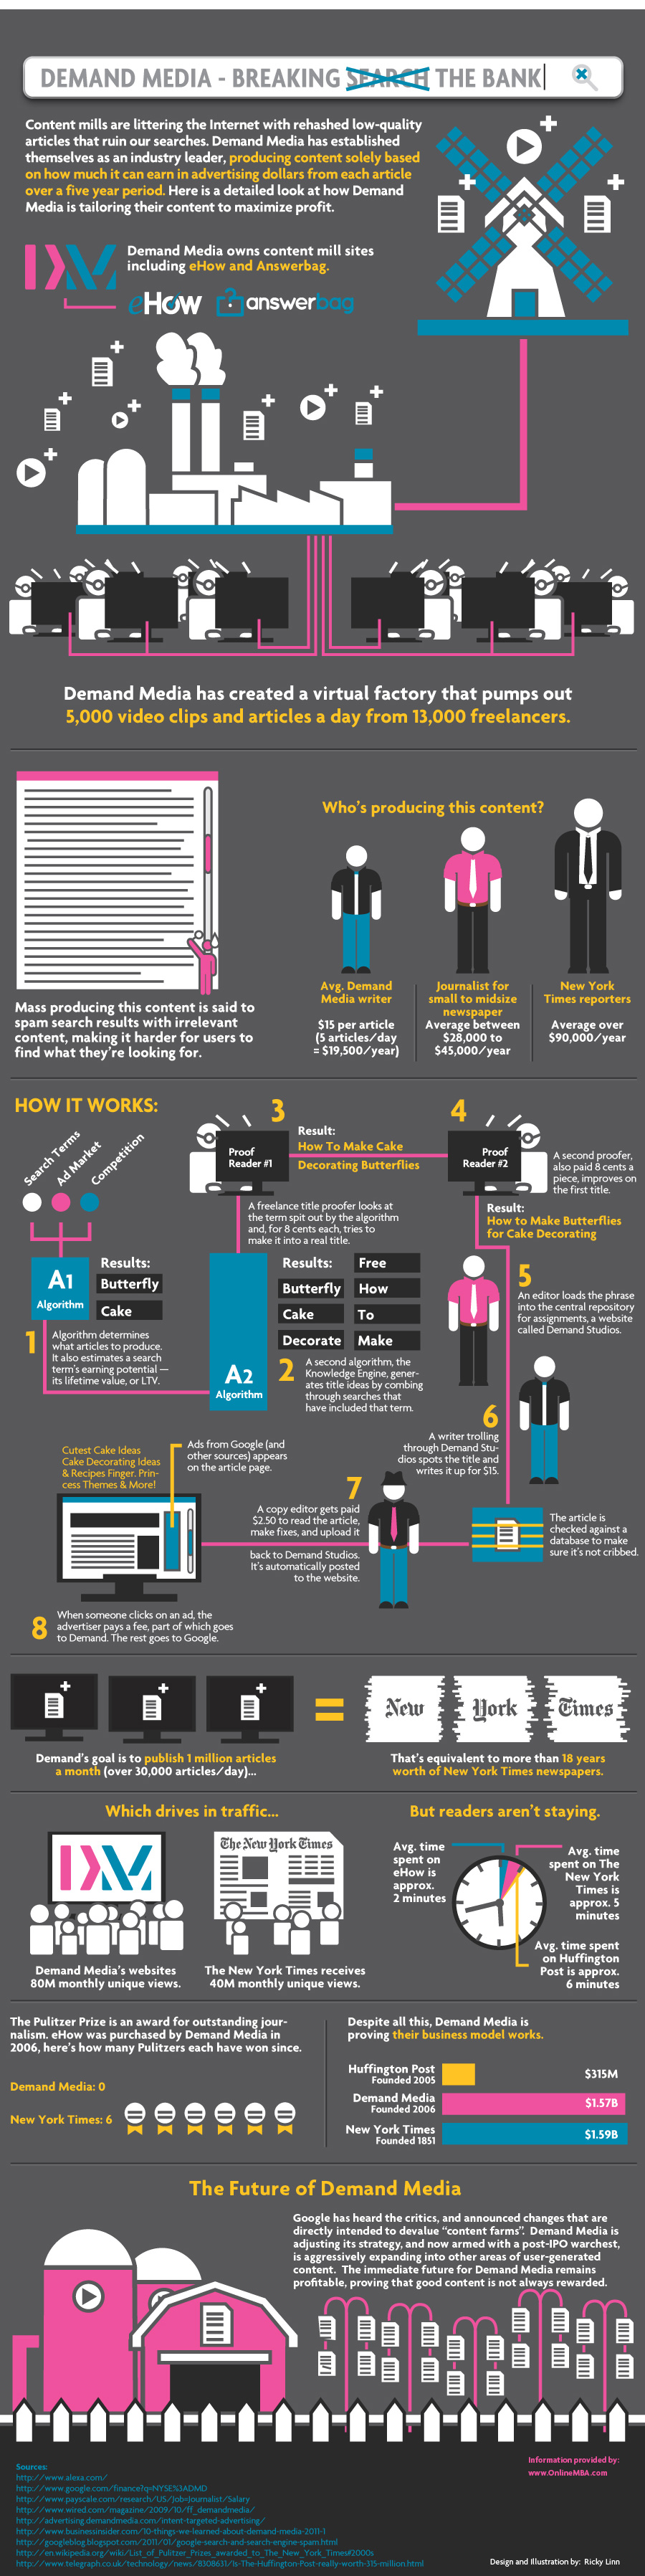 Infographic describing what Content Farms are from Online MBA